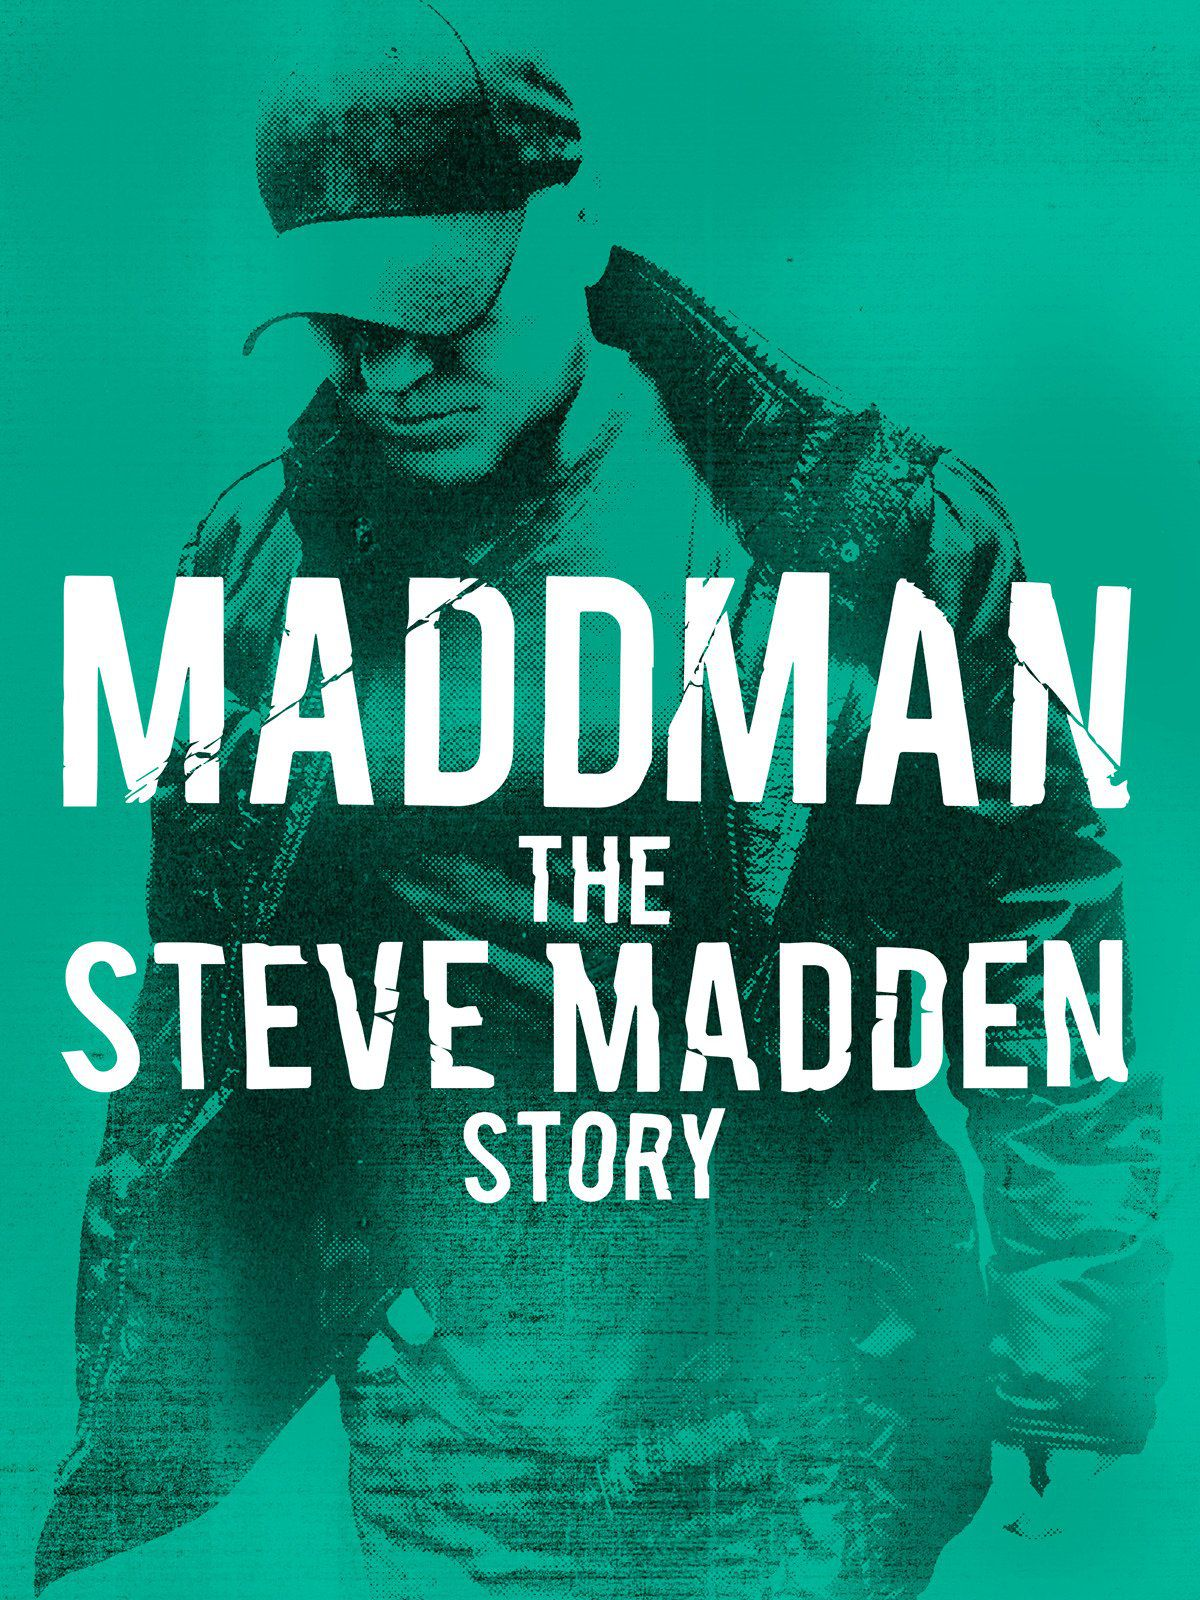 Maddman : The Steven Madden story - Documentaire (2017)